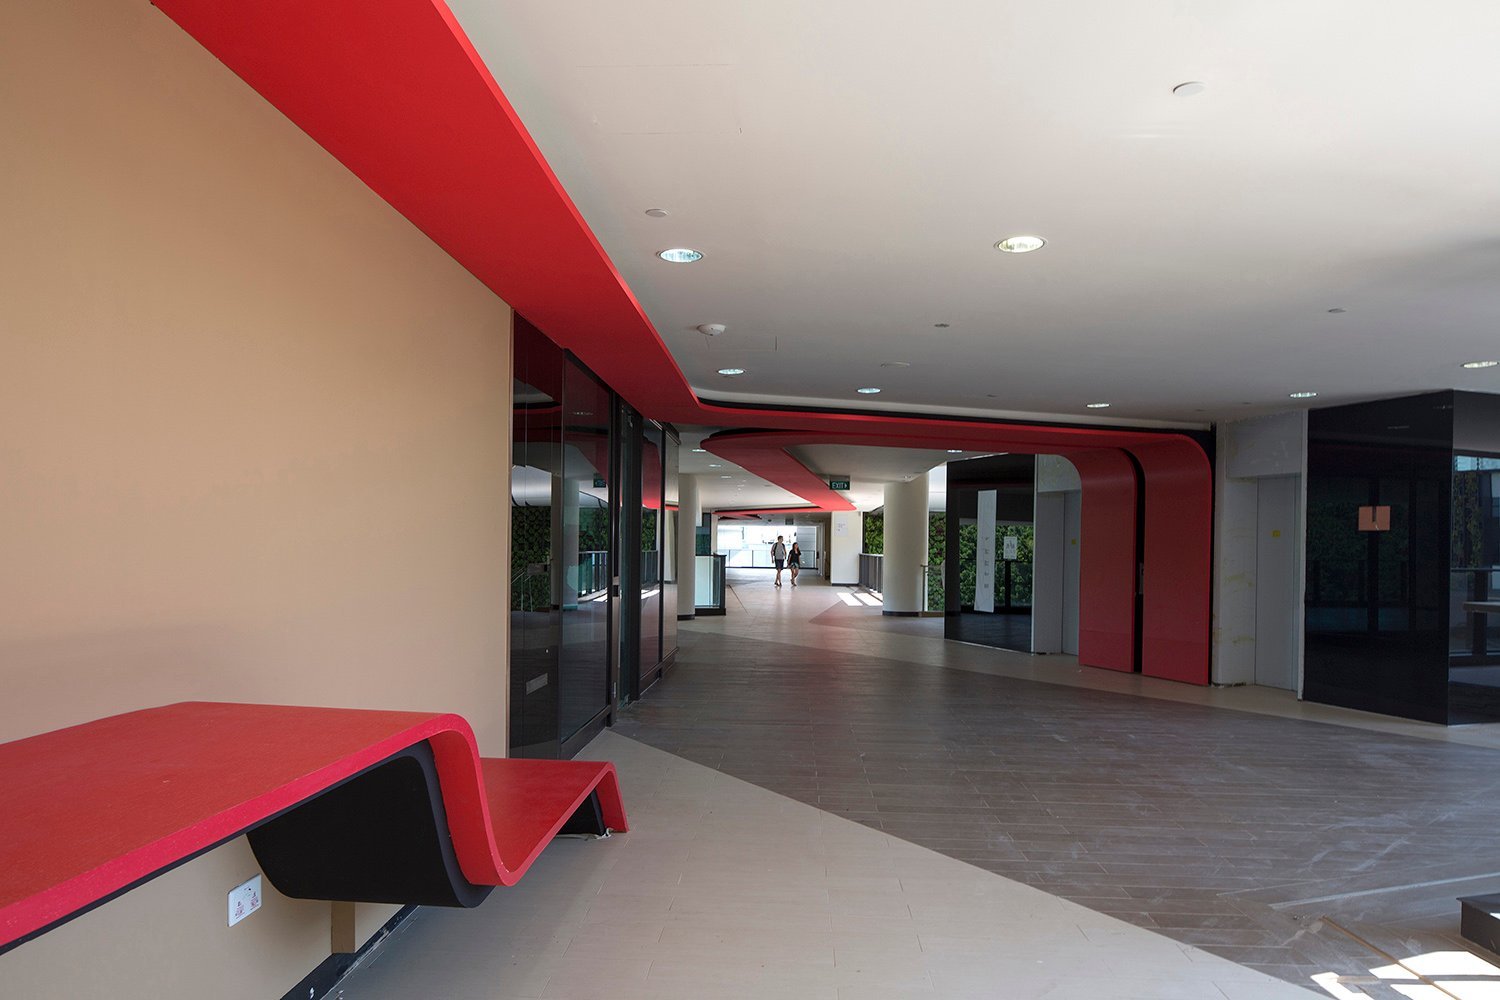 The red ribbon turns down to form feature walls and benches